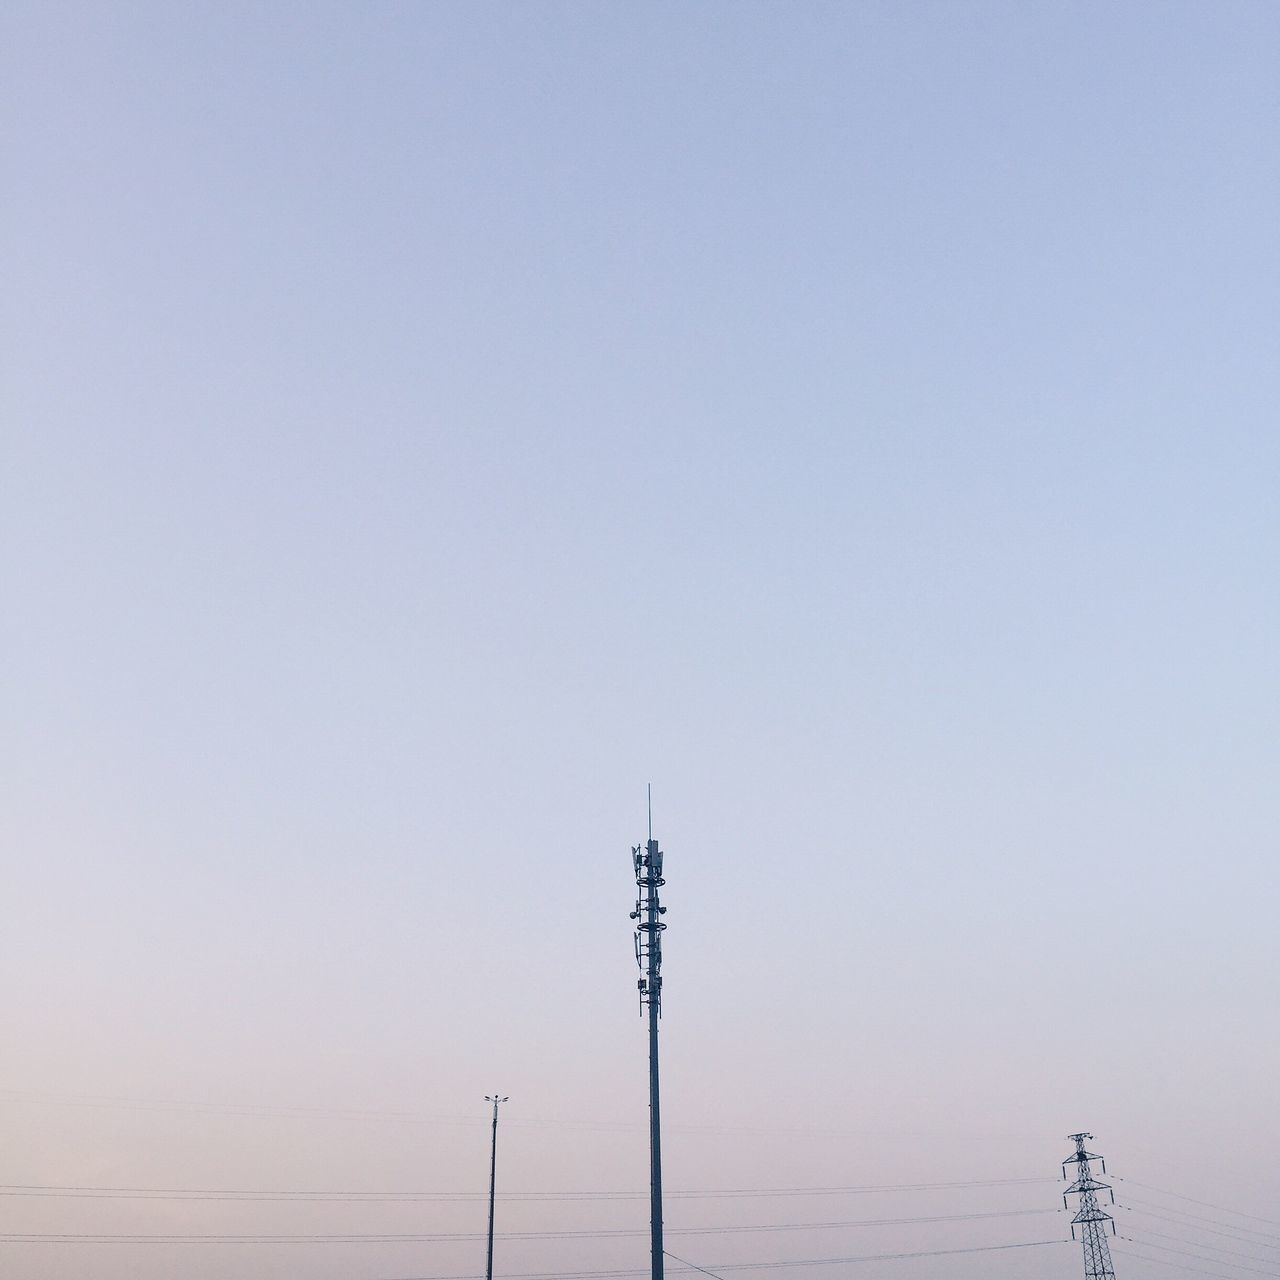 connection, copy space, communication, clear sky, technology, antenna - aerial, electricity pylon, electricity, no people, cable, power supply, outdoors, nature, day, television aerial, telecommunications equipment, beauty in nature, sky